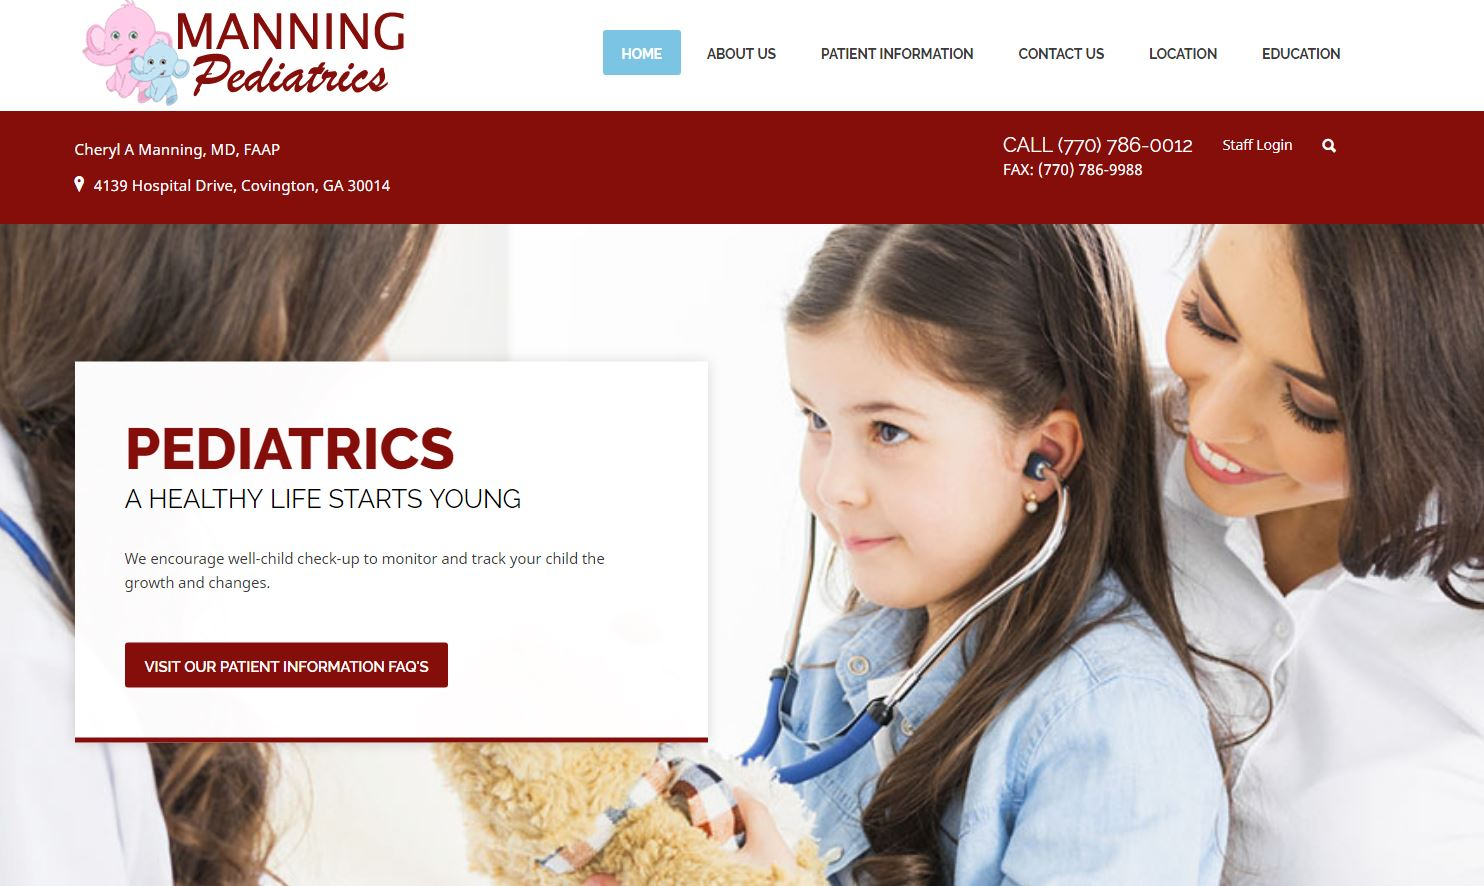 Solia Media - Manning Pediatrics